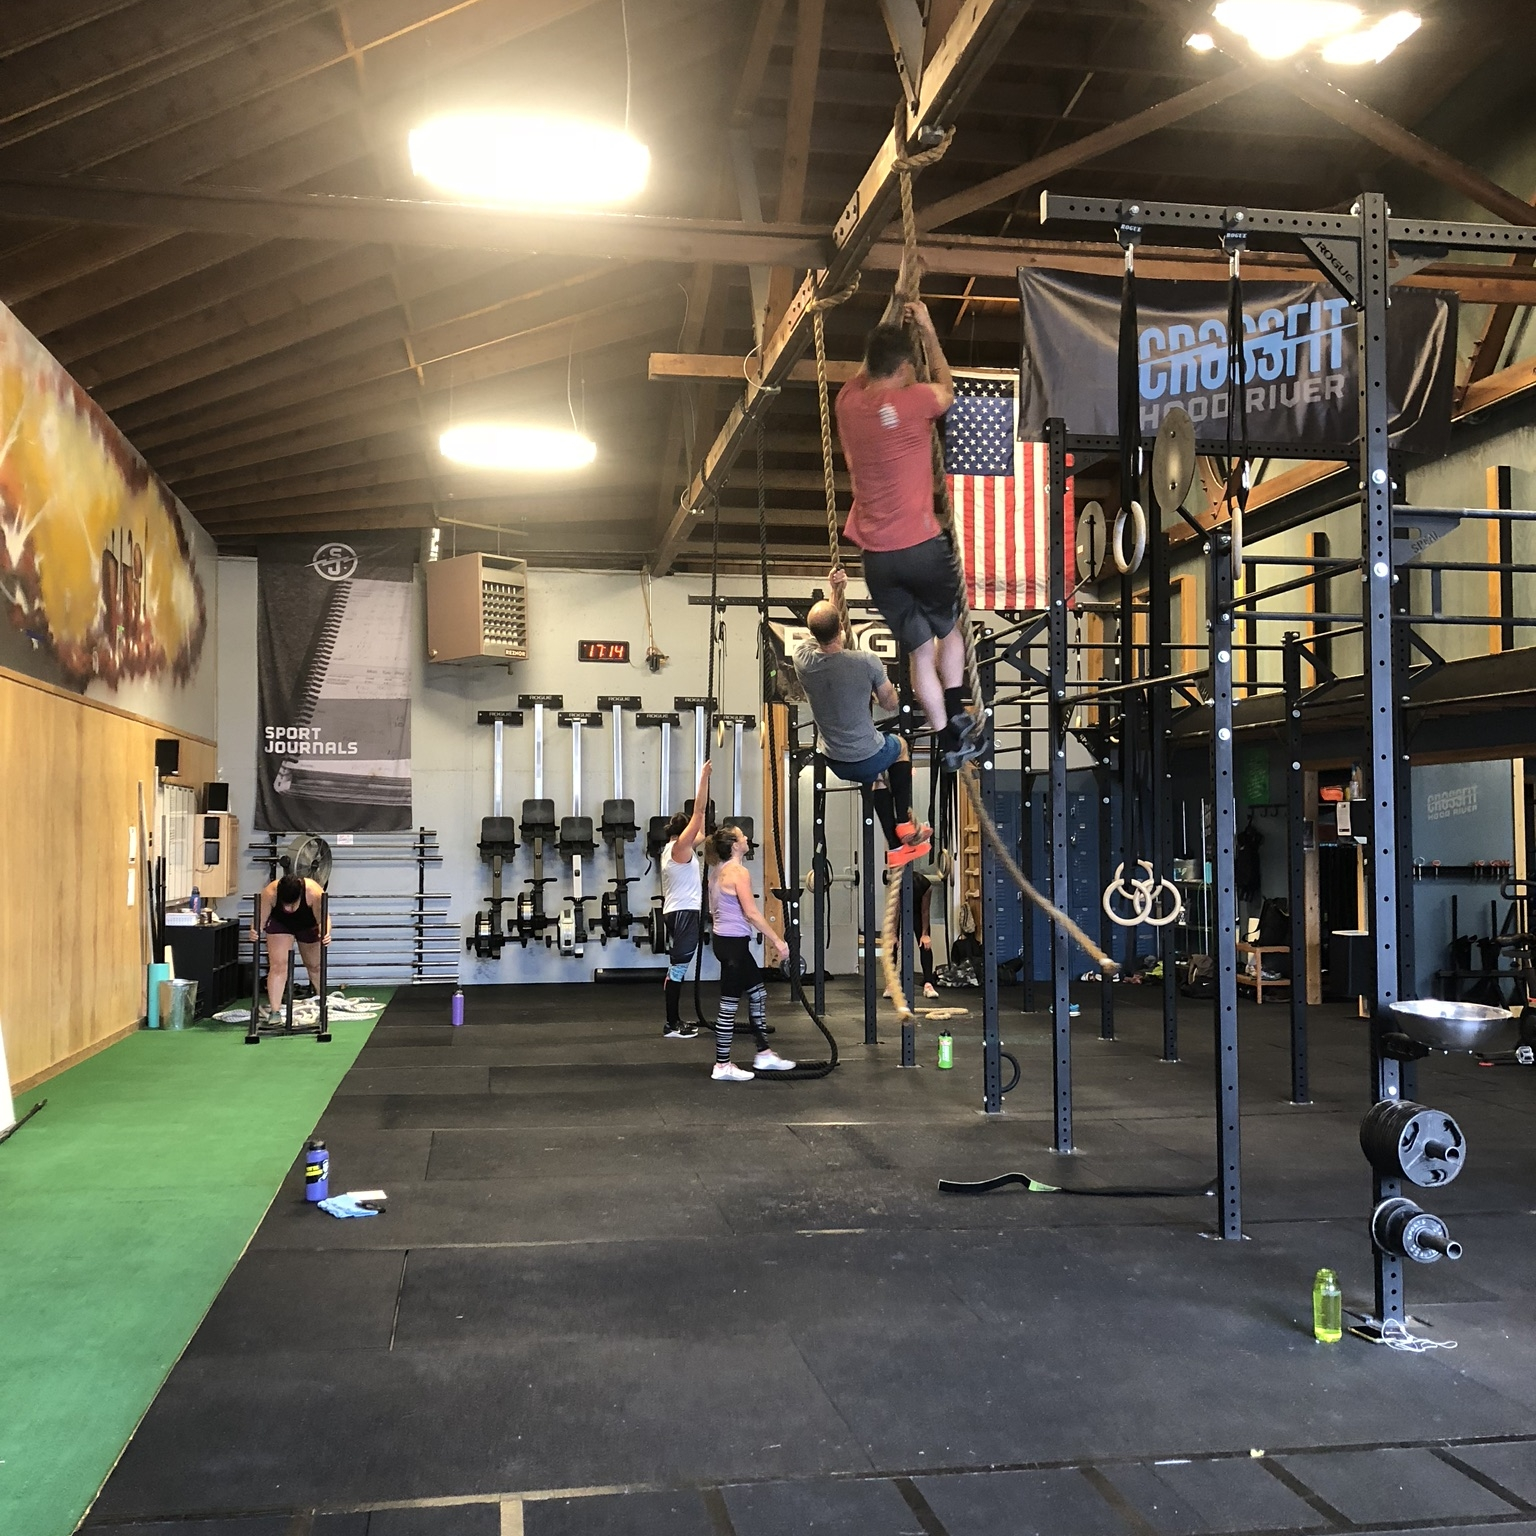 CROSSFIT - Functional FitnessSmart ProgrammingCustomized to Fit Individual NeedsSupportive CommunityHigh Caliber CoachesWorld Class Facility